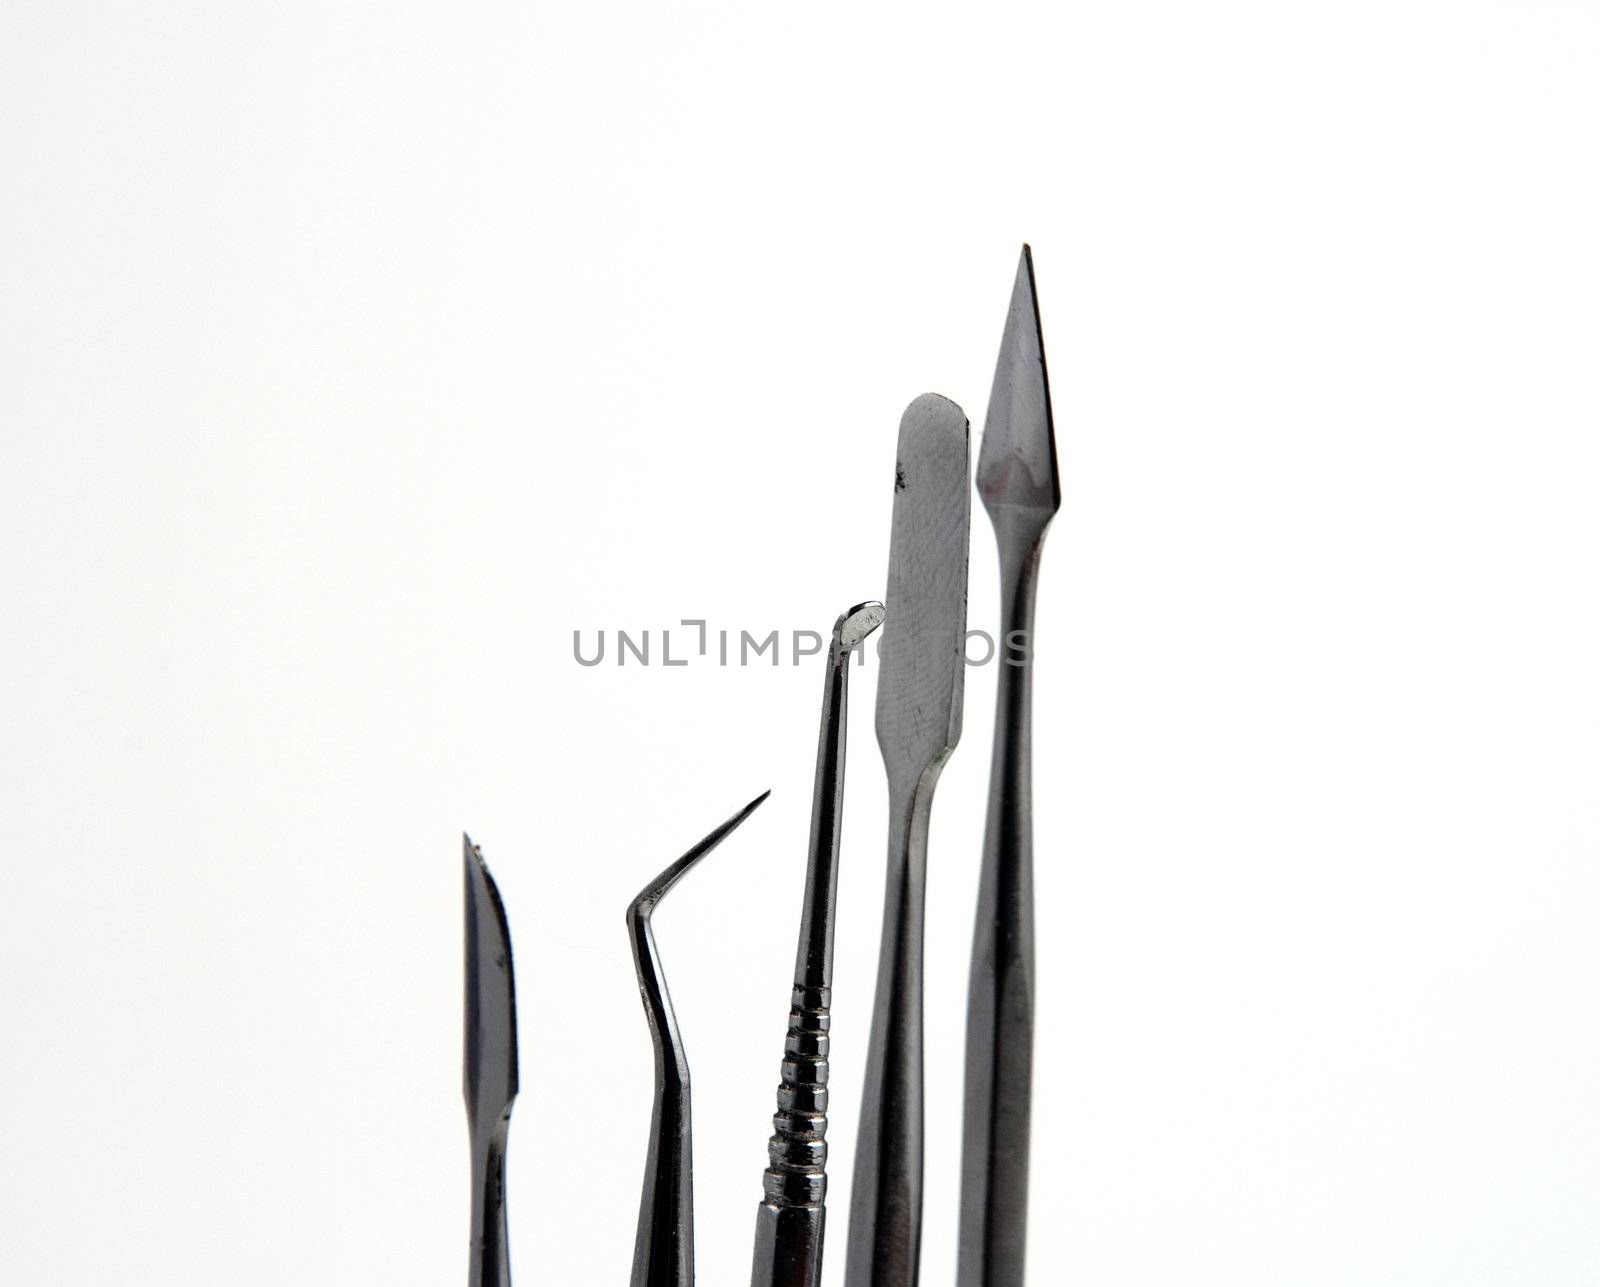 Stock pictures of metal dental instruments used to work on patients